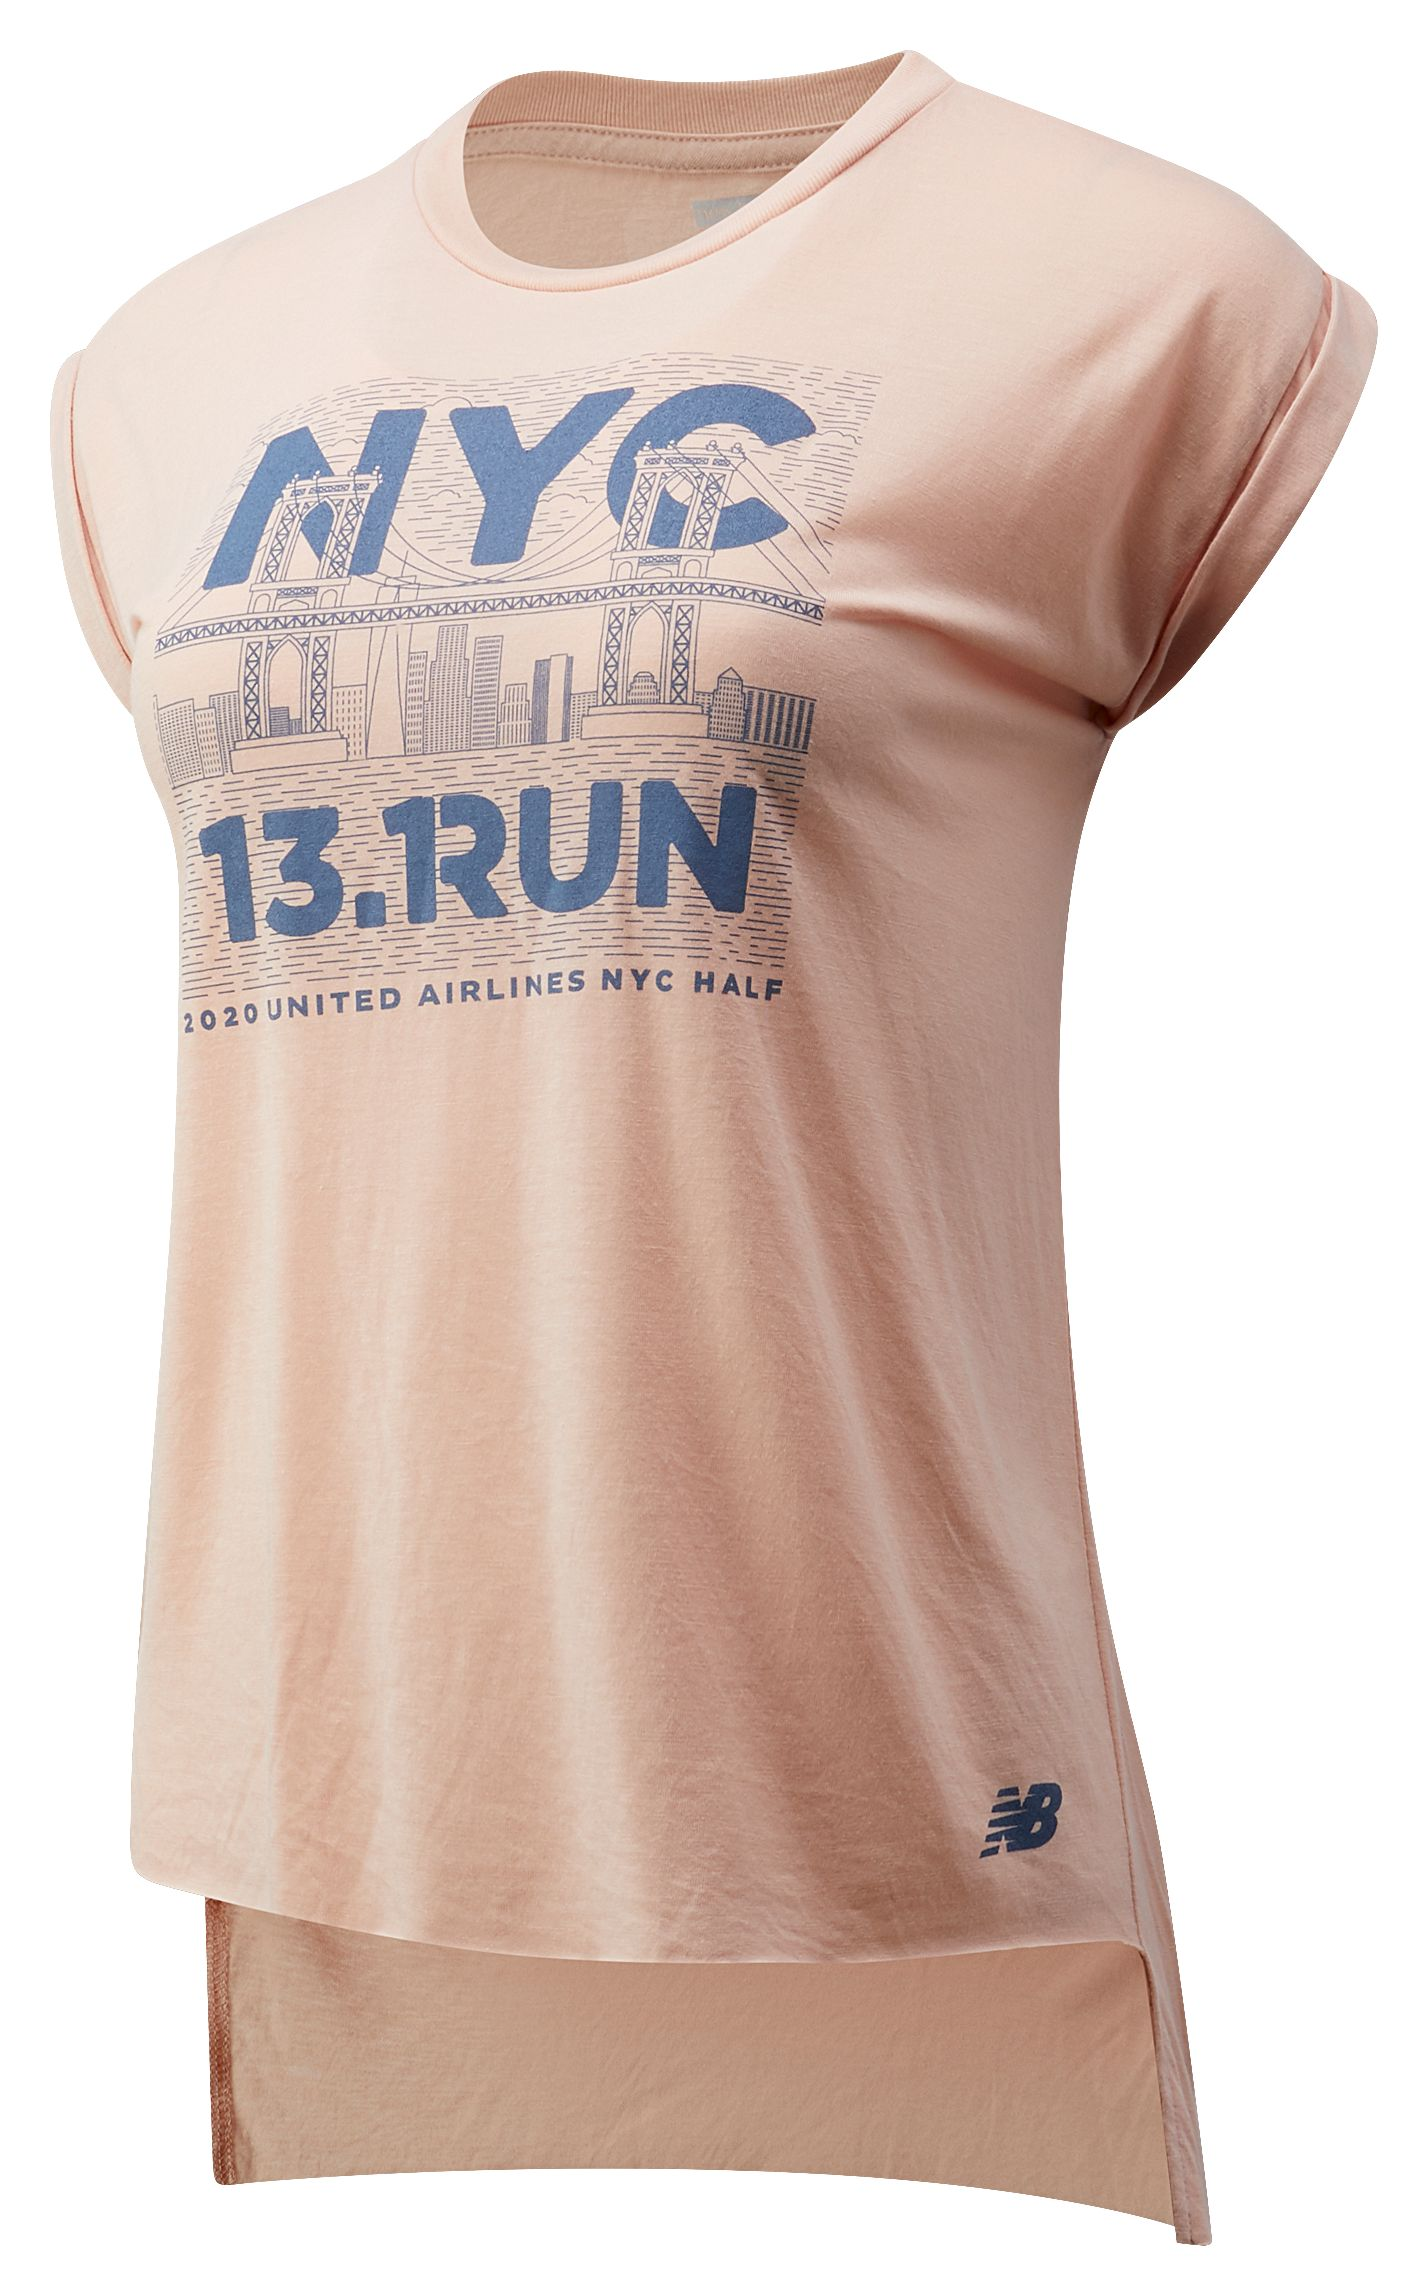 Women's 2020 United Airlines Half 13.Run Tank